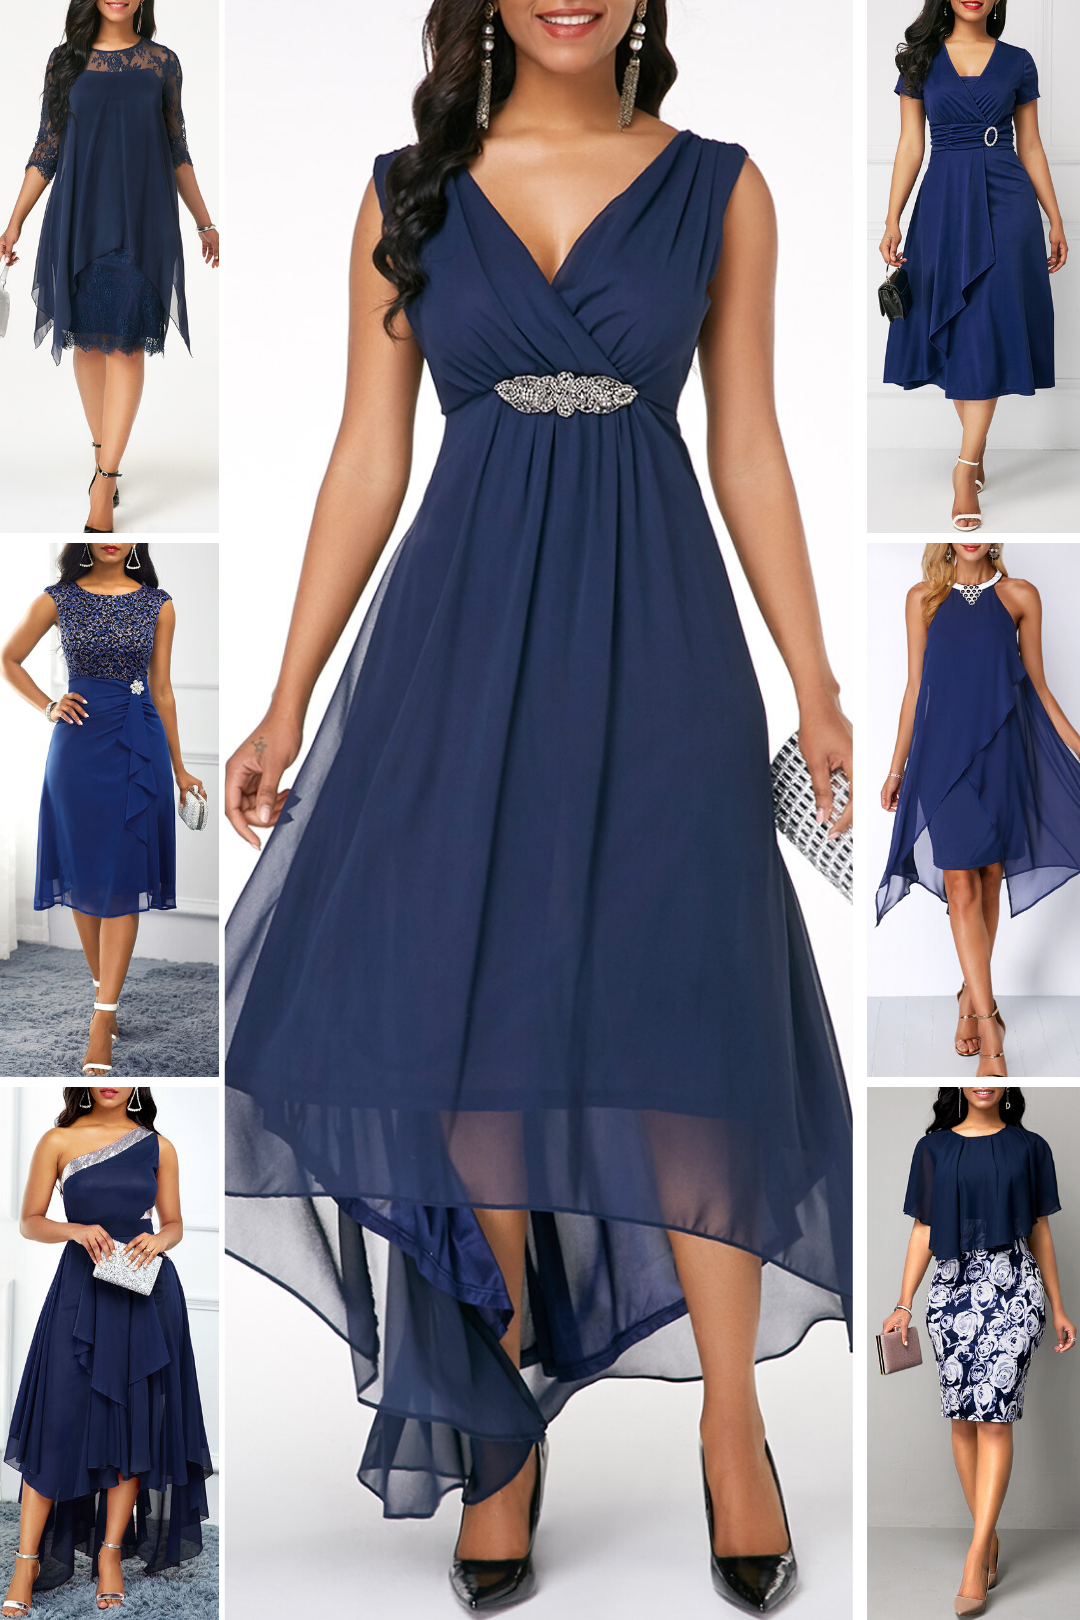 Navy Blue Dresses To Date Night Party 2020 In 2020 Date Night Outfit Curvy Beautiful Dresses Dresses